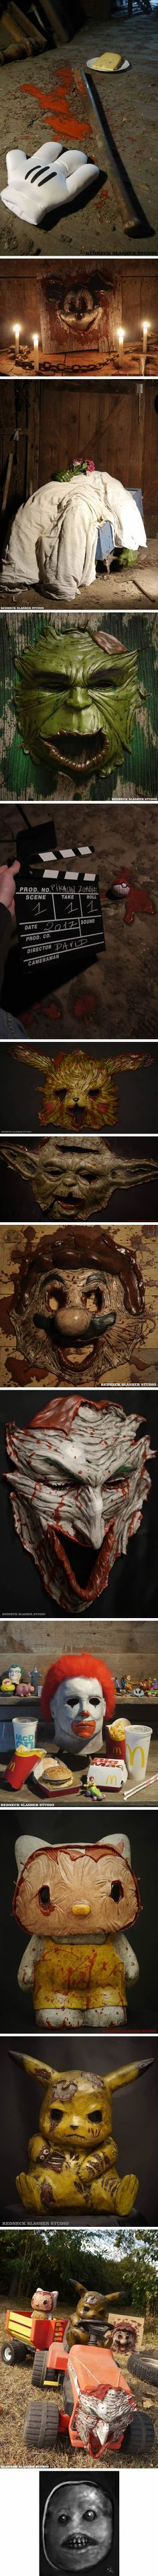 These Creepy And Realistic Handcrafted Masks Are Freaking Us Out